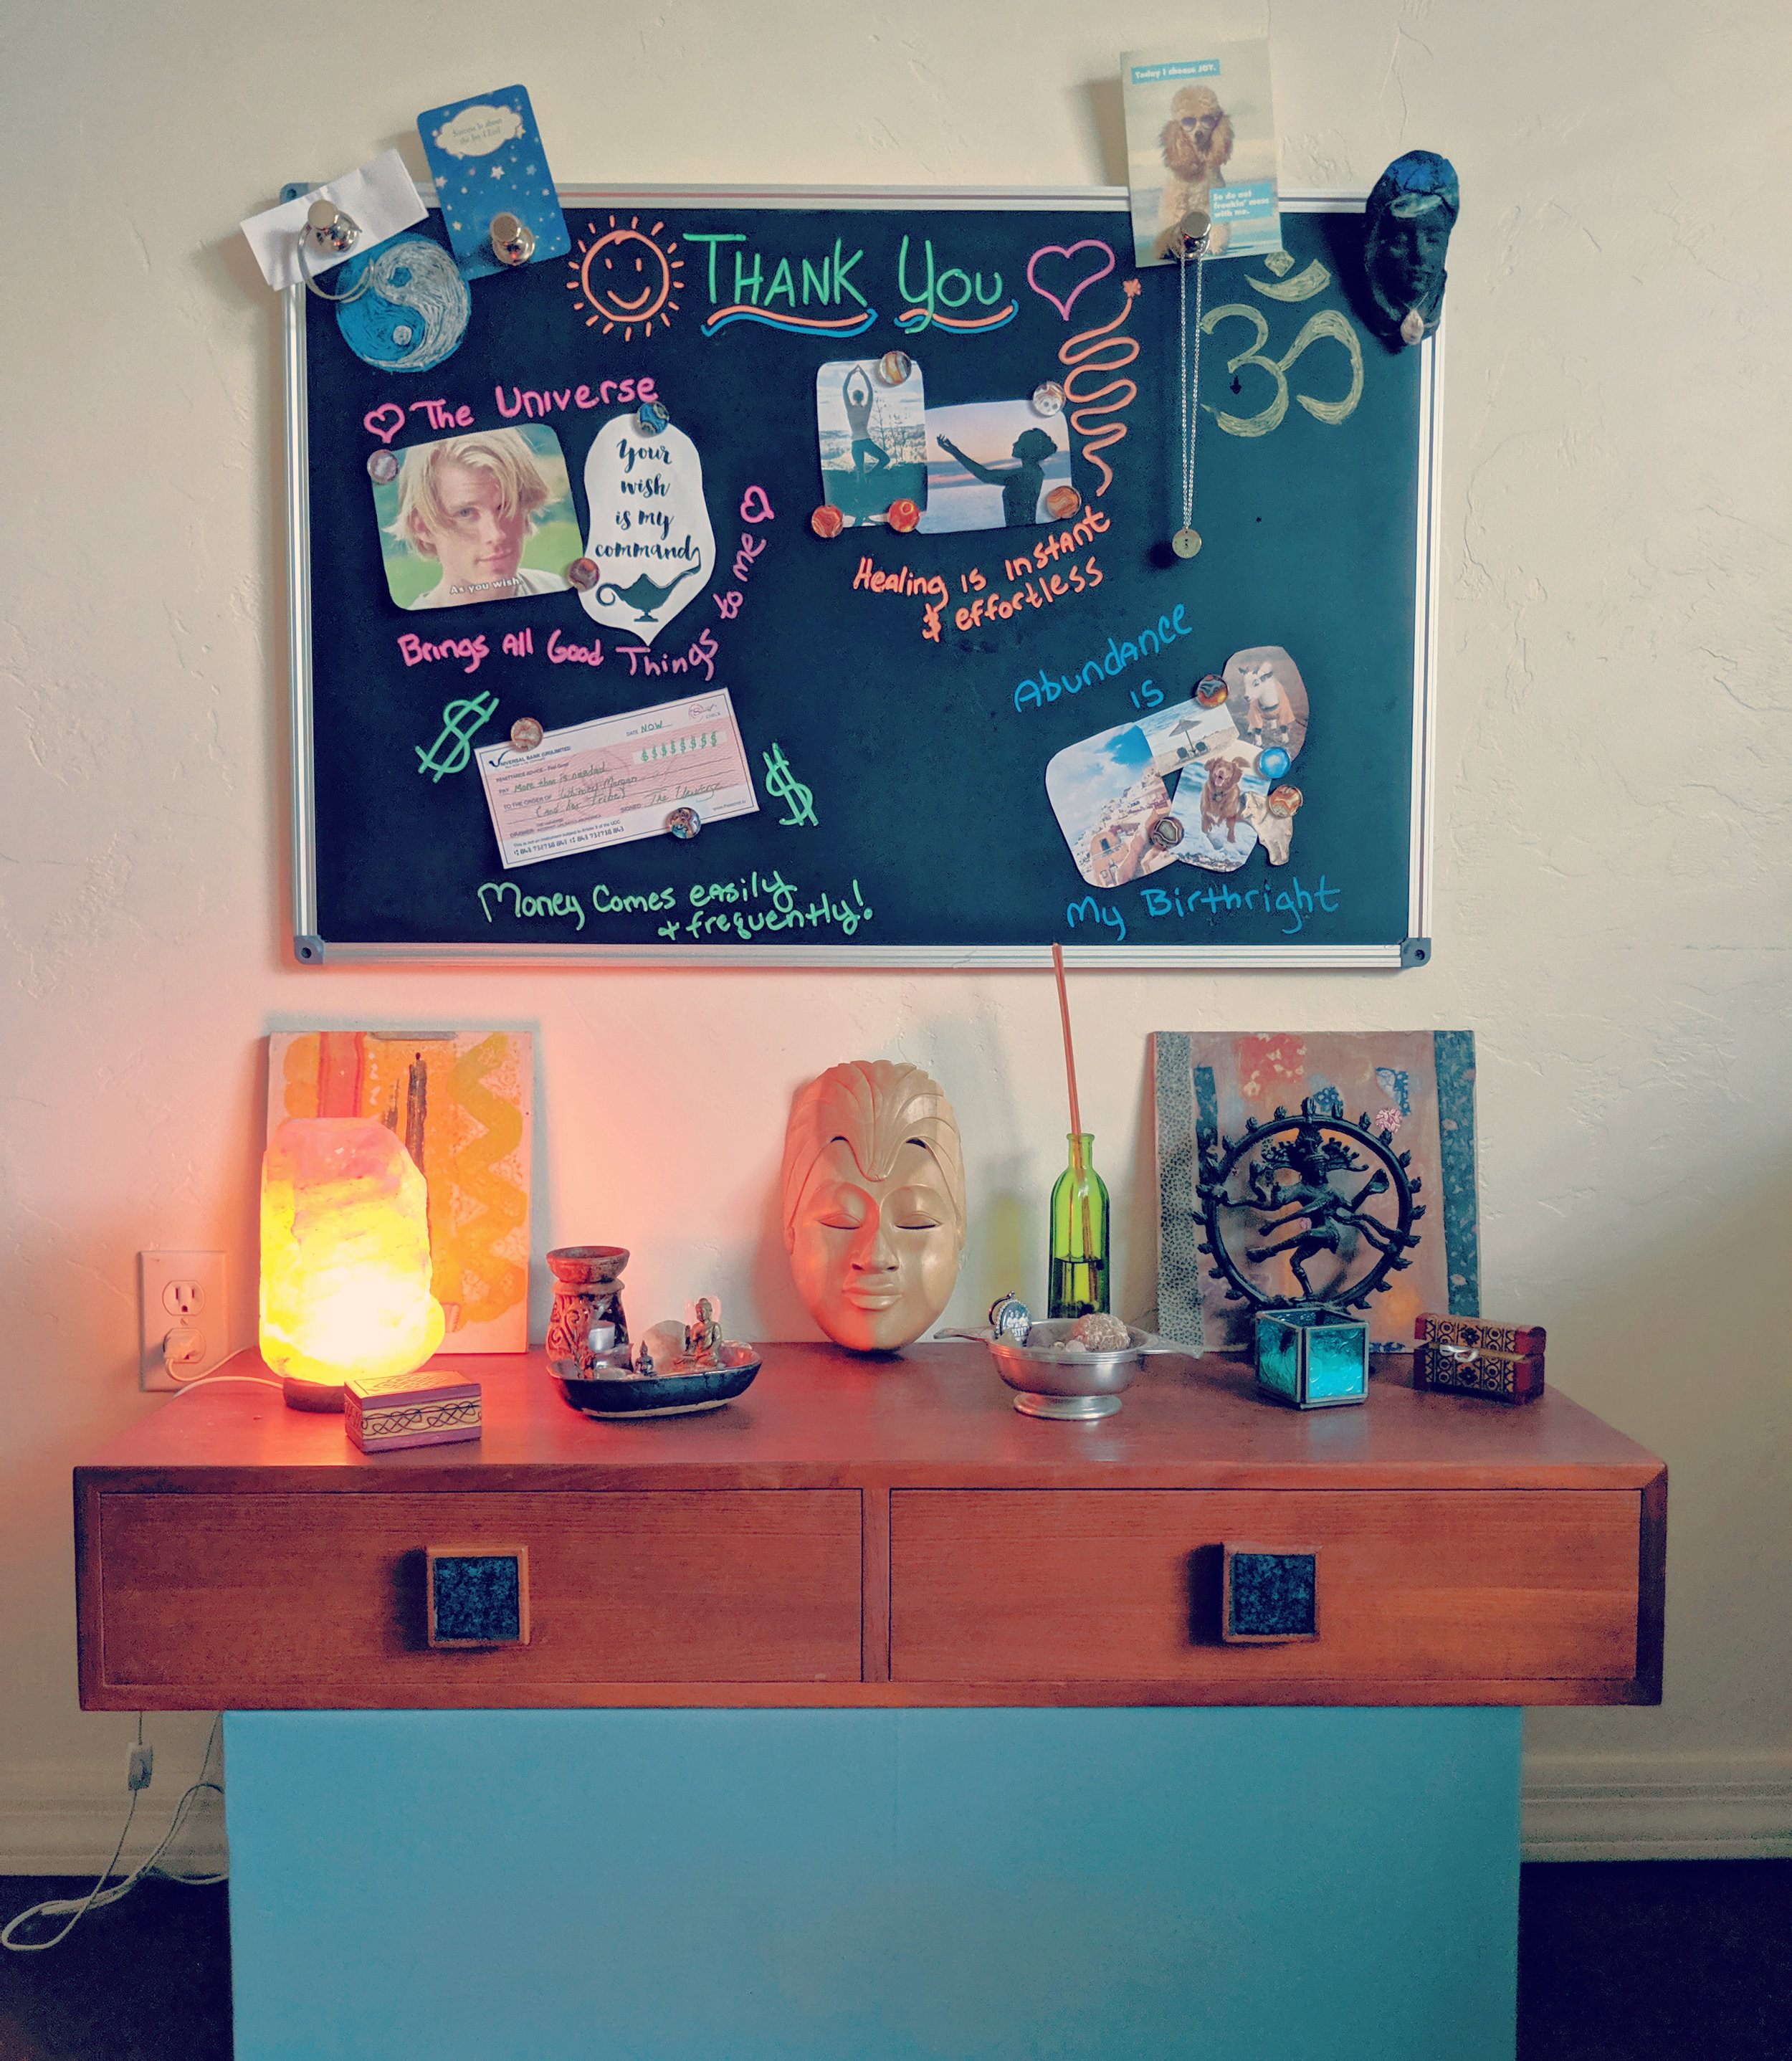 My sacred space - altar & vision board